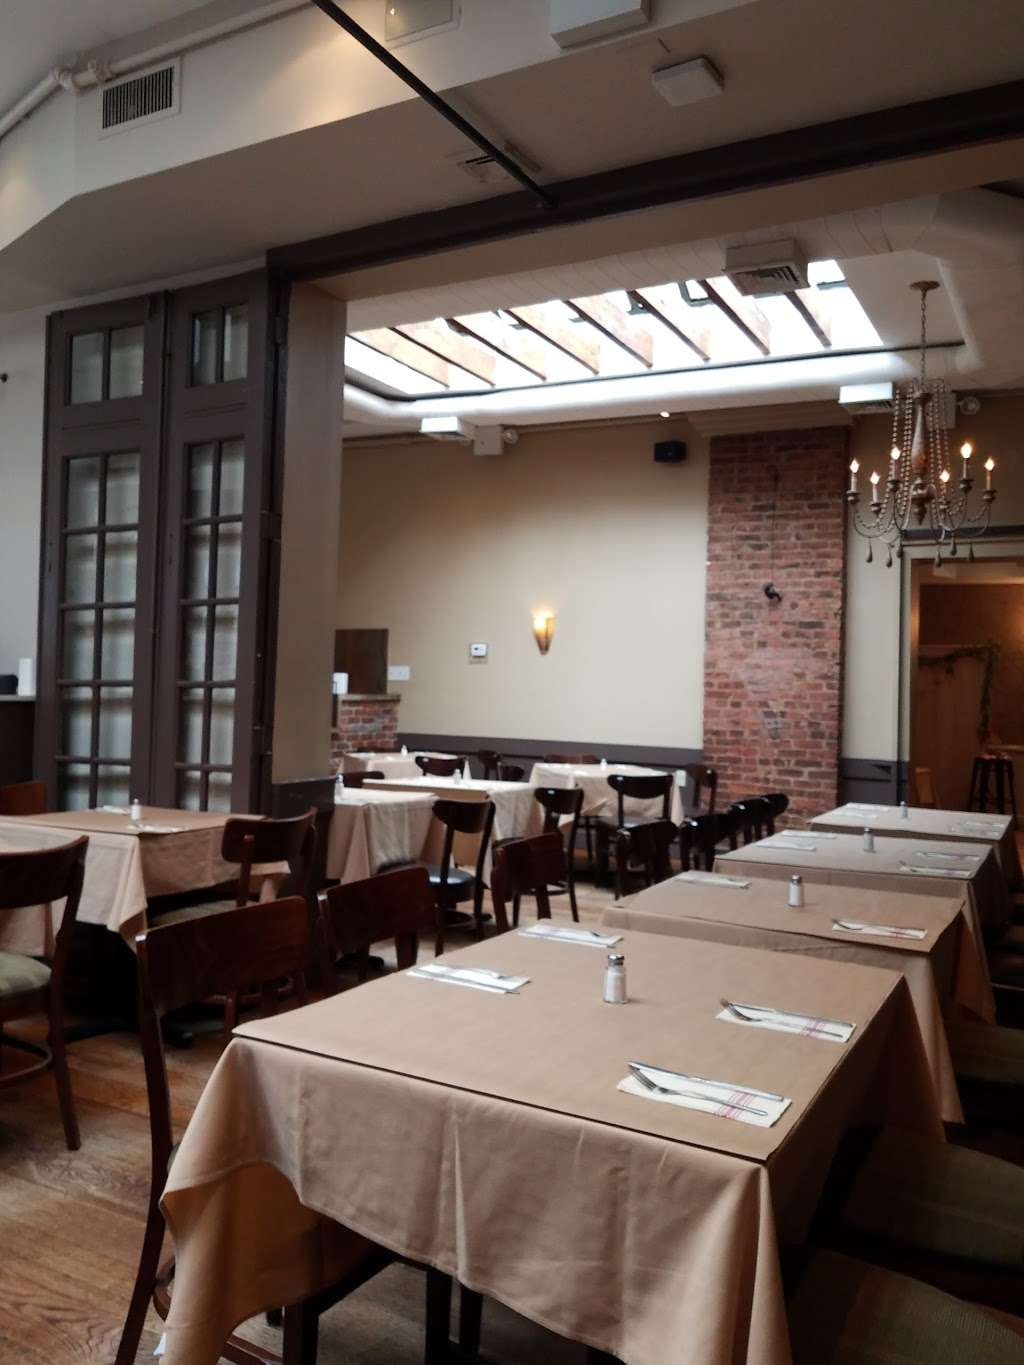 Dees - restaurant  | Photo 1 of 10 | Address: 107-23 Metropolitan Ave, Forest Hills, NY 11375, USA | Phone: (888) 488-3337